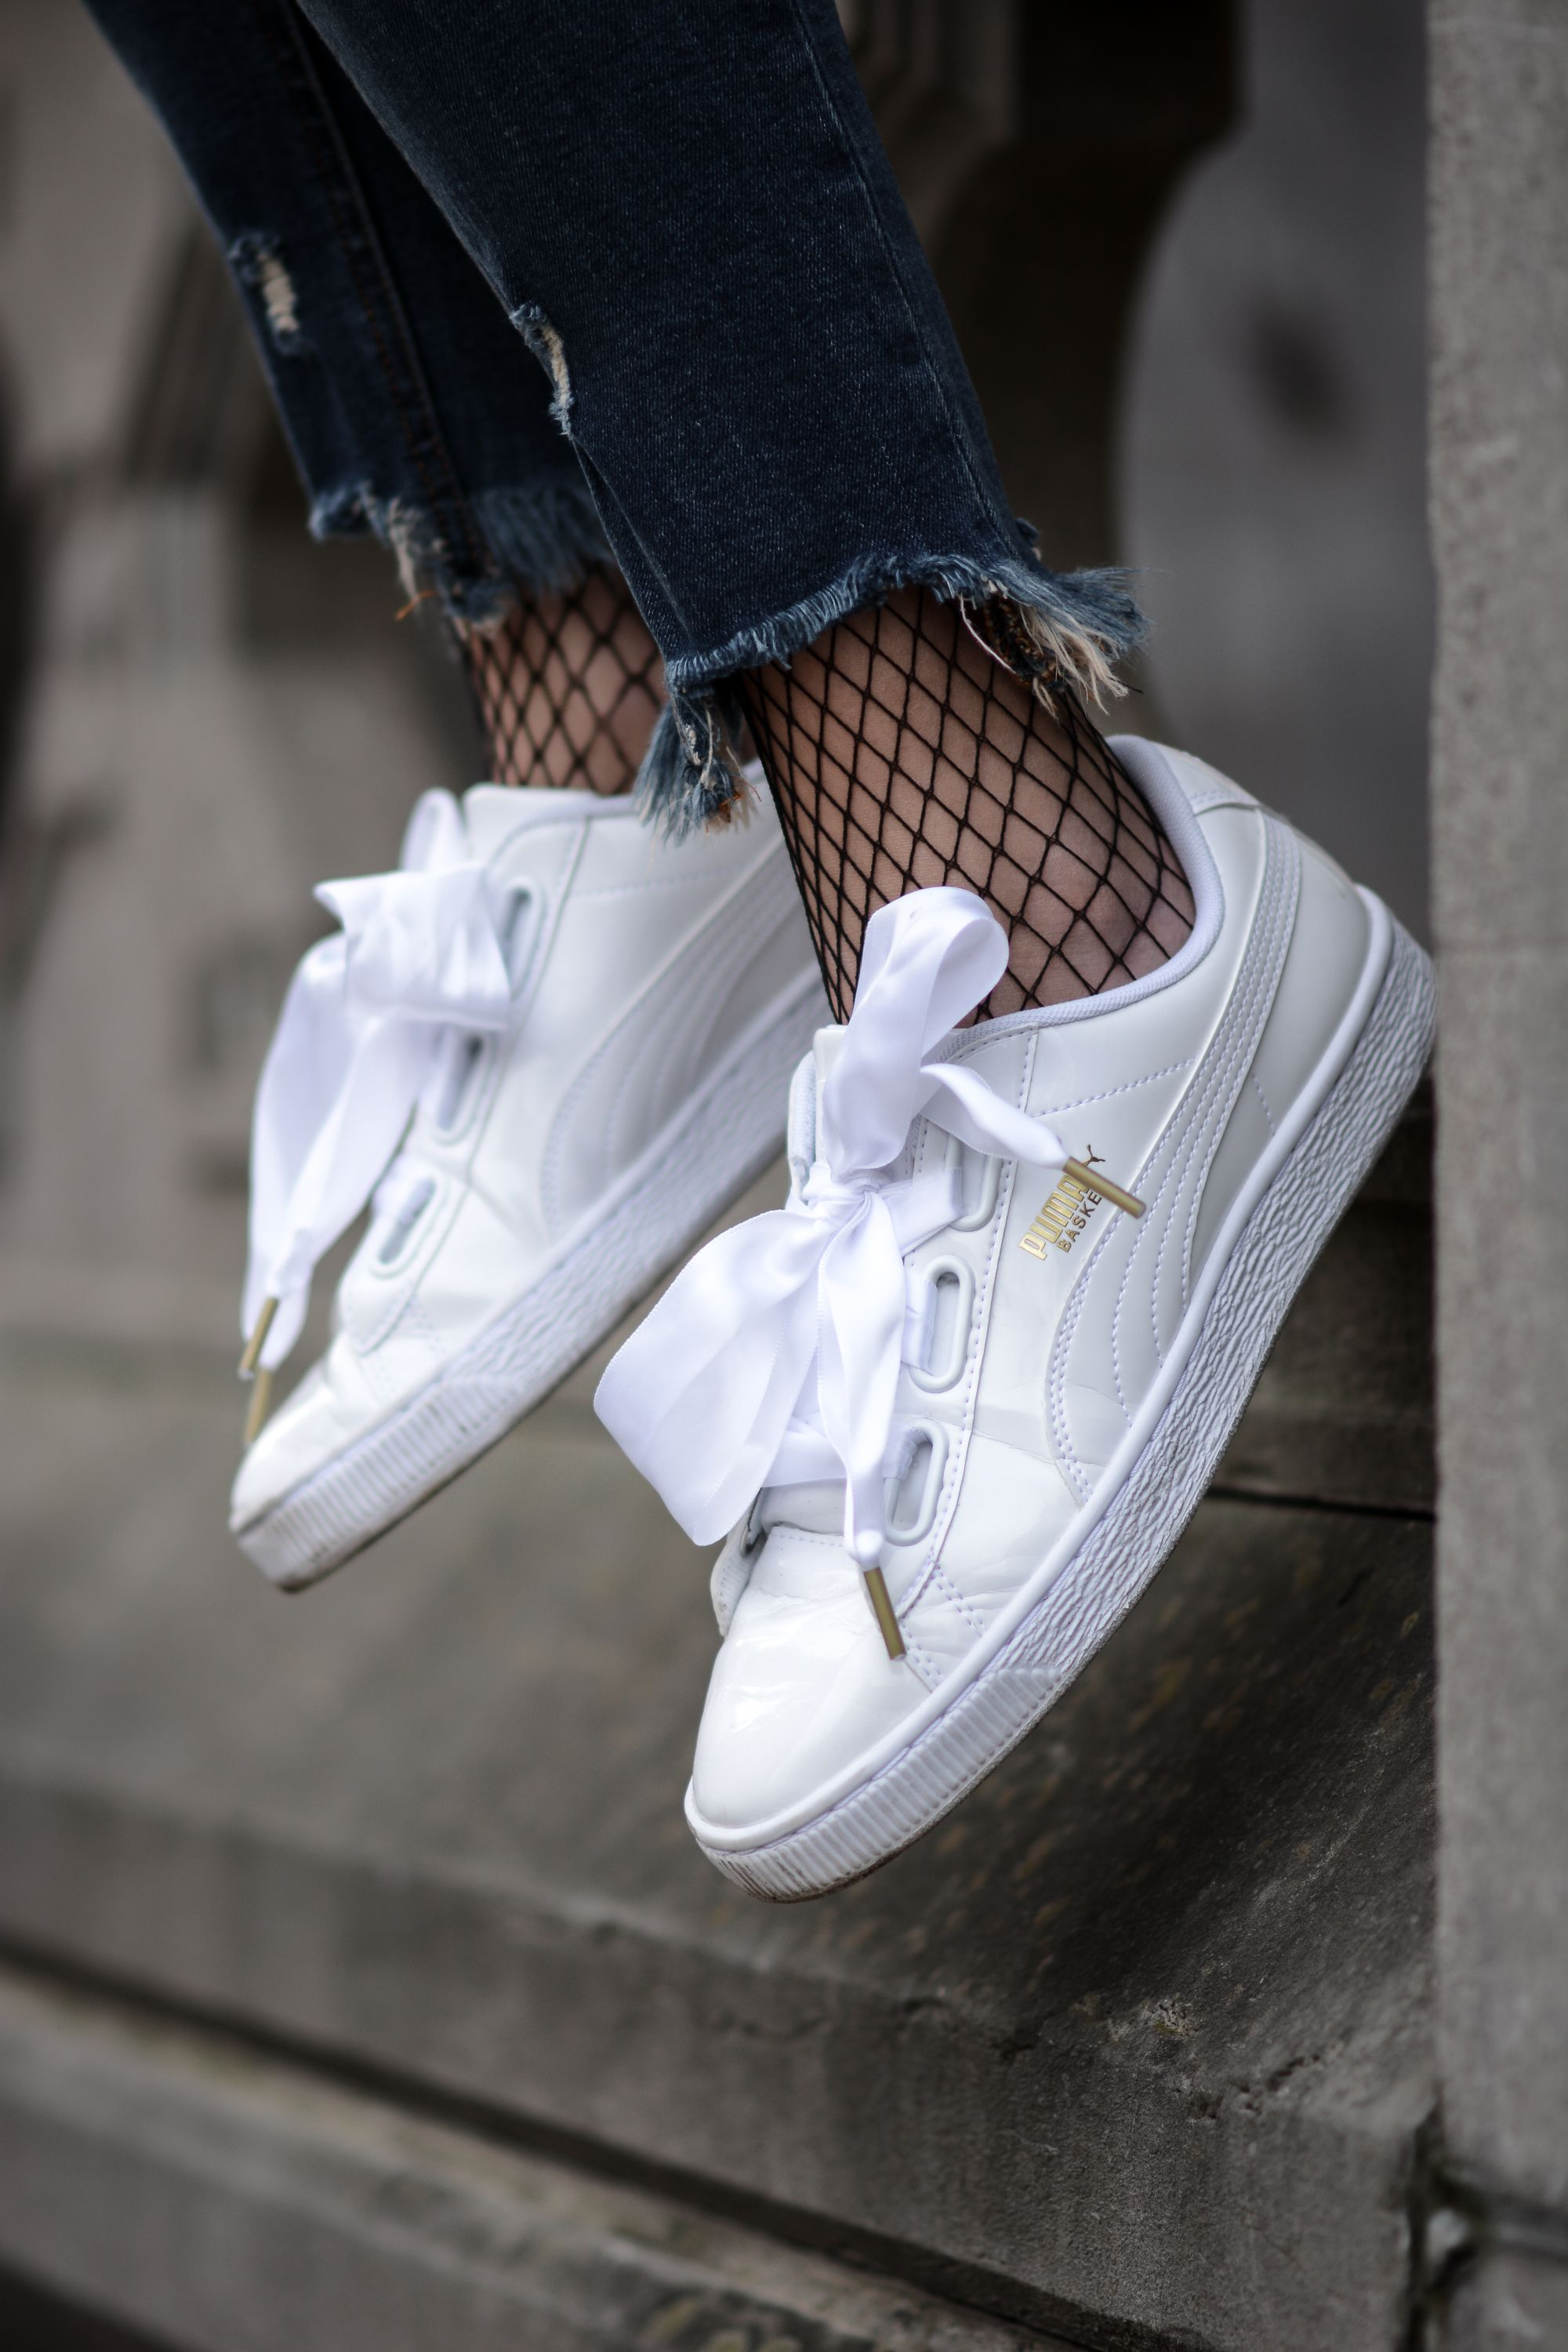 PUMA Women's Shoes - PUMA Womens Shoes - Sneakers femme - Puma Heart Patent  (©milkywaysblueyes) - Find deals and best selling products for PUMA Shoes  for ...